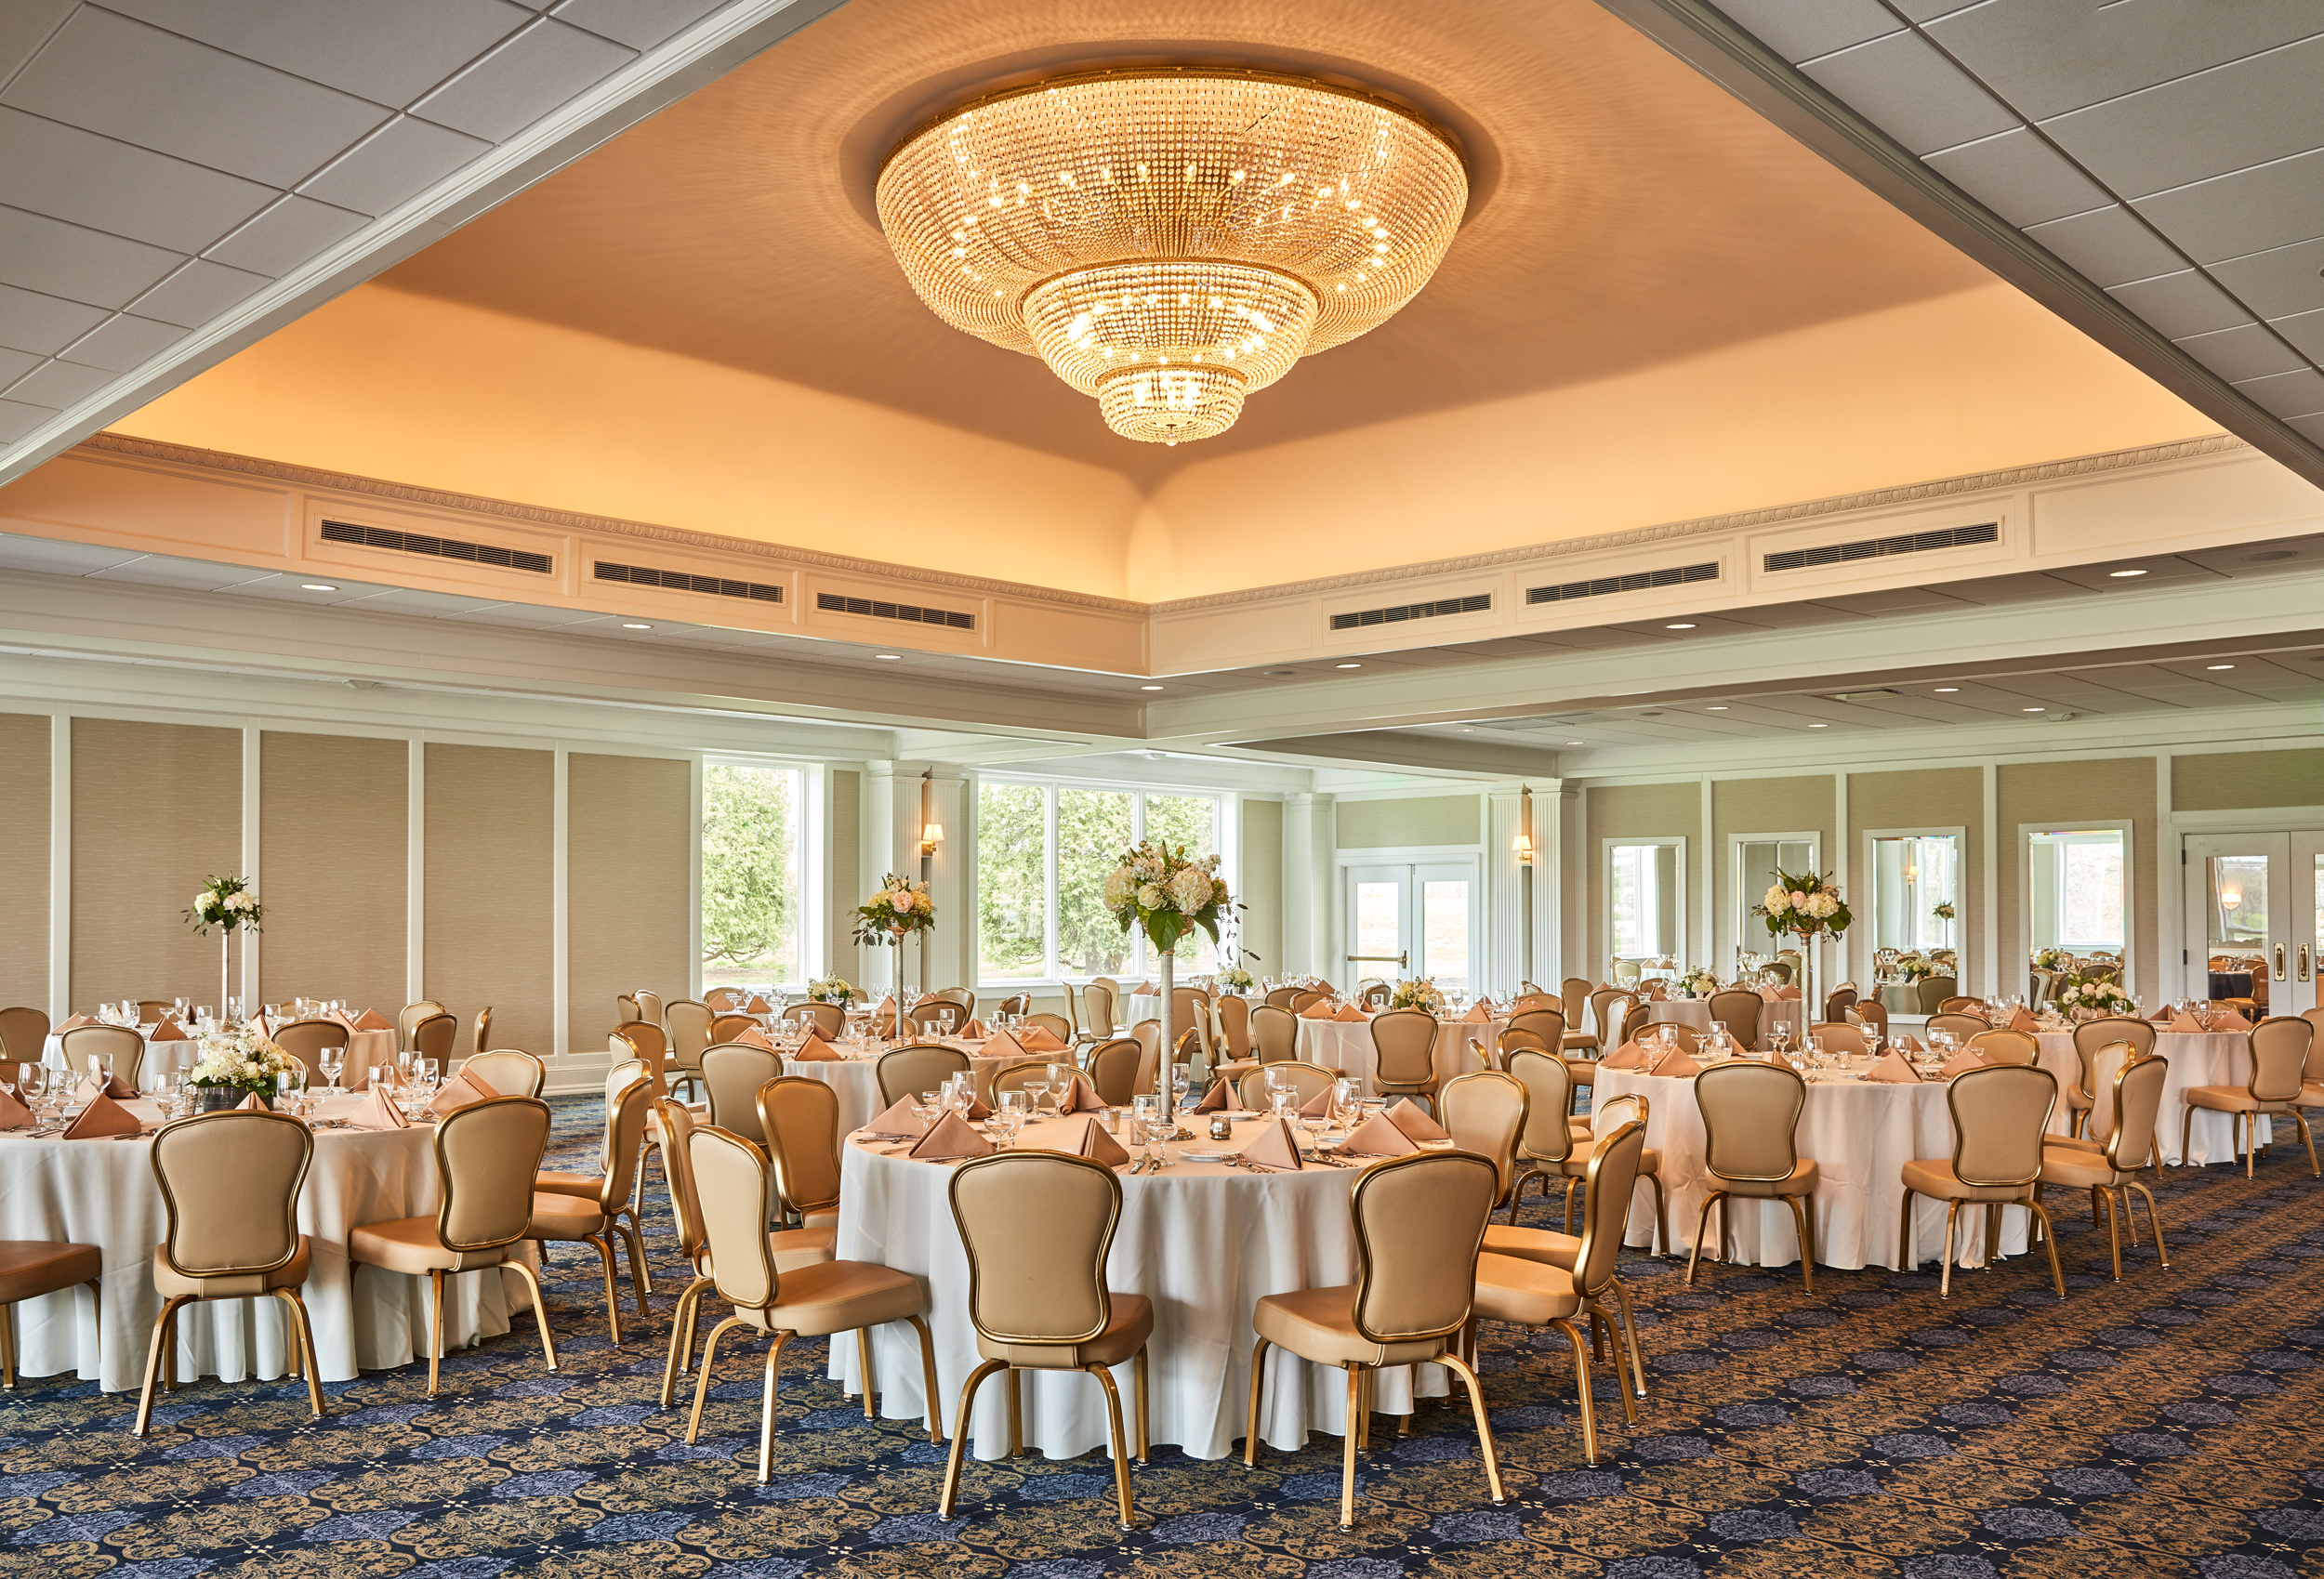 Bluestone Country Club Previously Meadowlands  MidAtlantic ConstructionMidAtlantic Construction